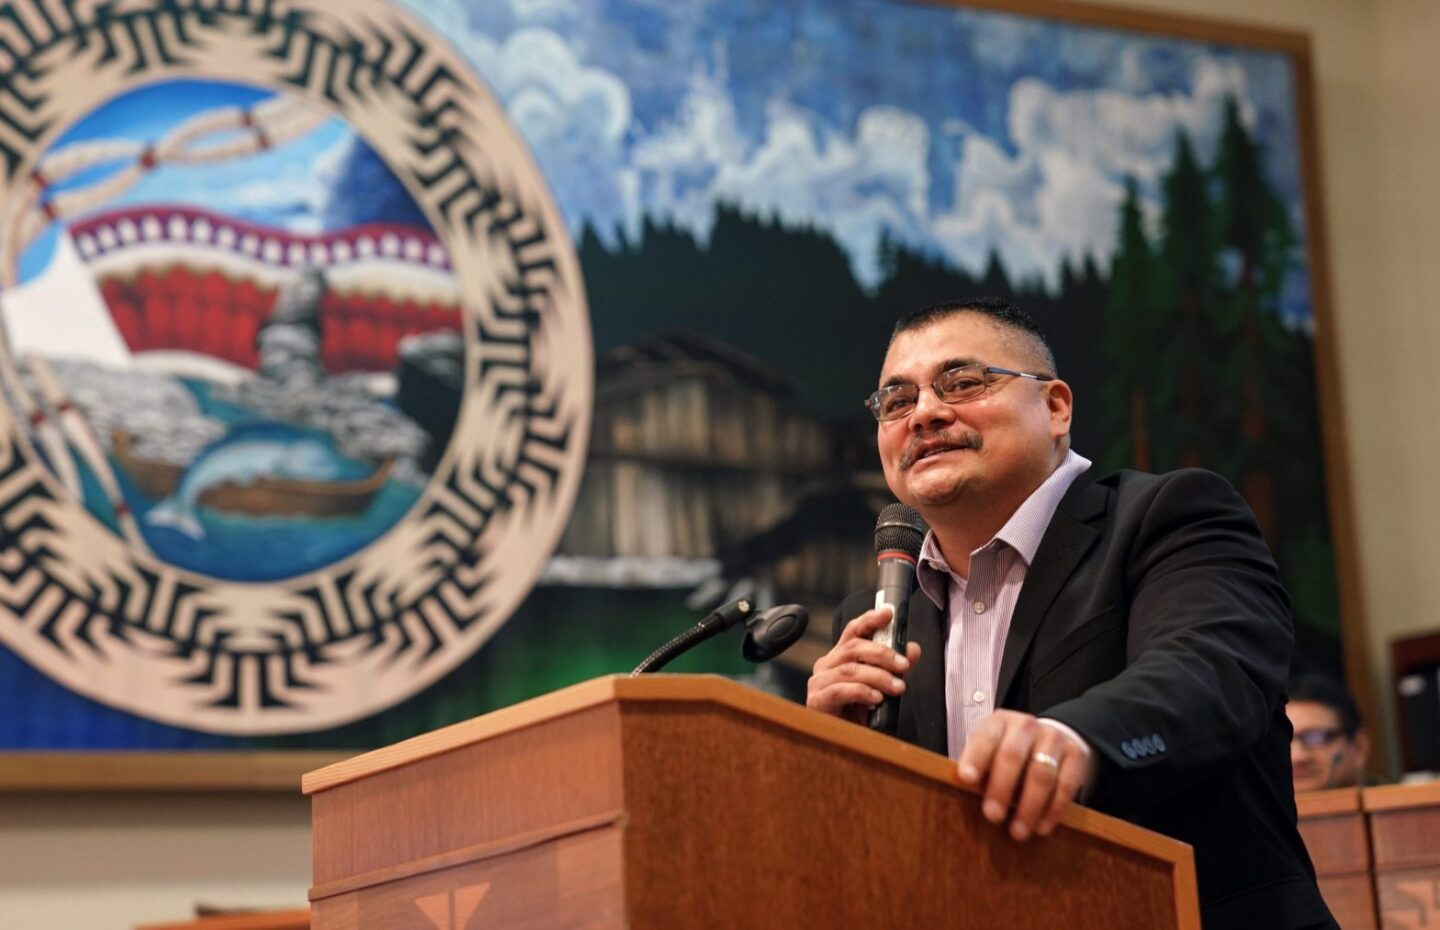 A man in a black suit jacket and glasses speaks at a podium with a Yurok seal in the background.